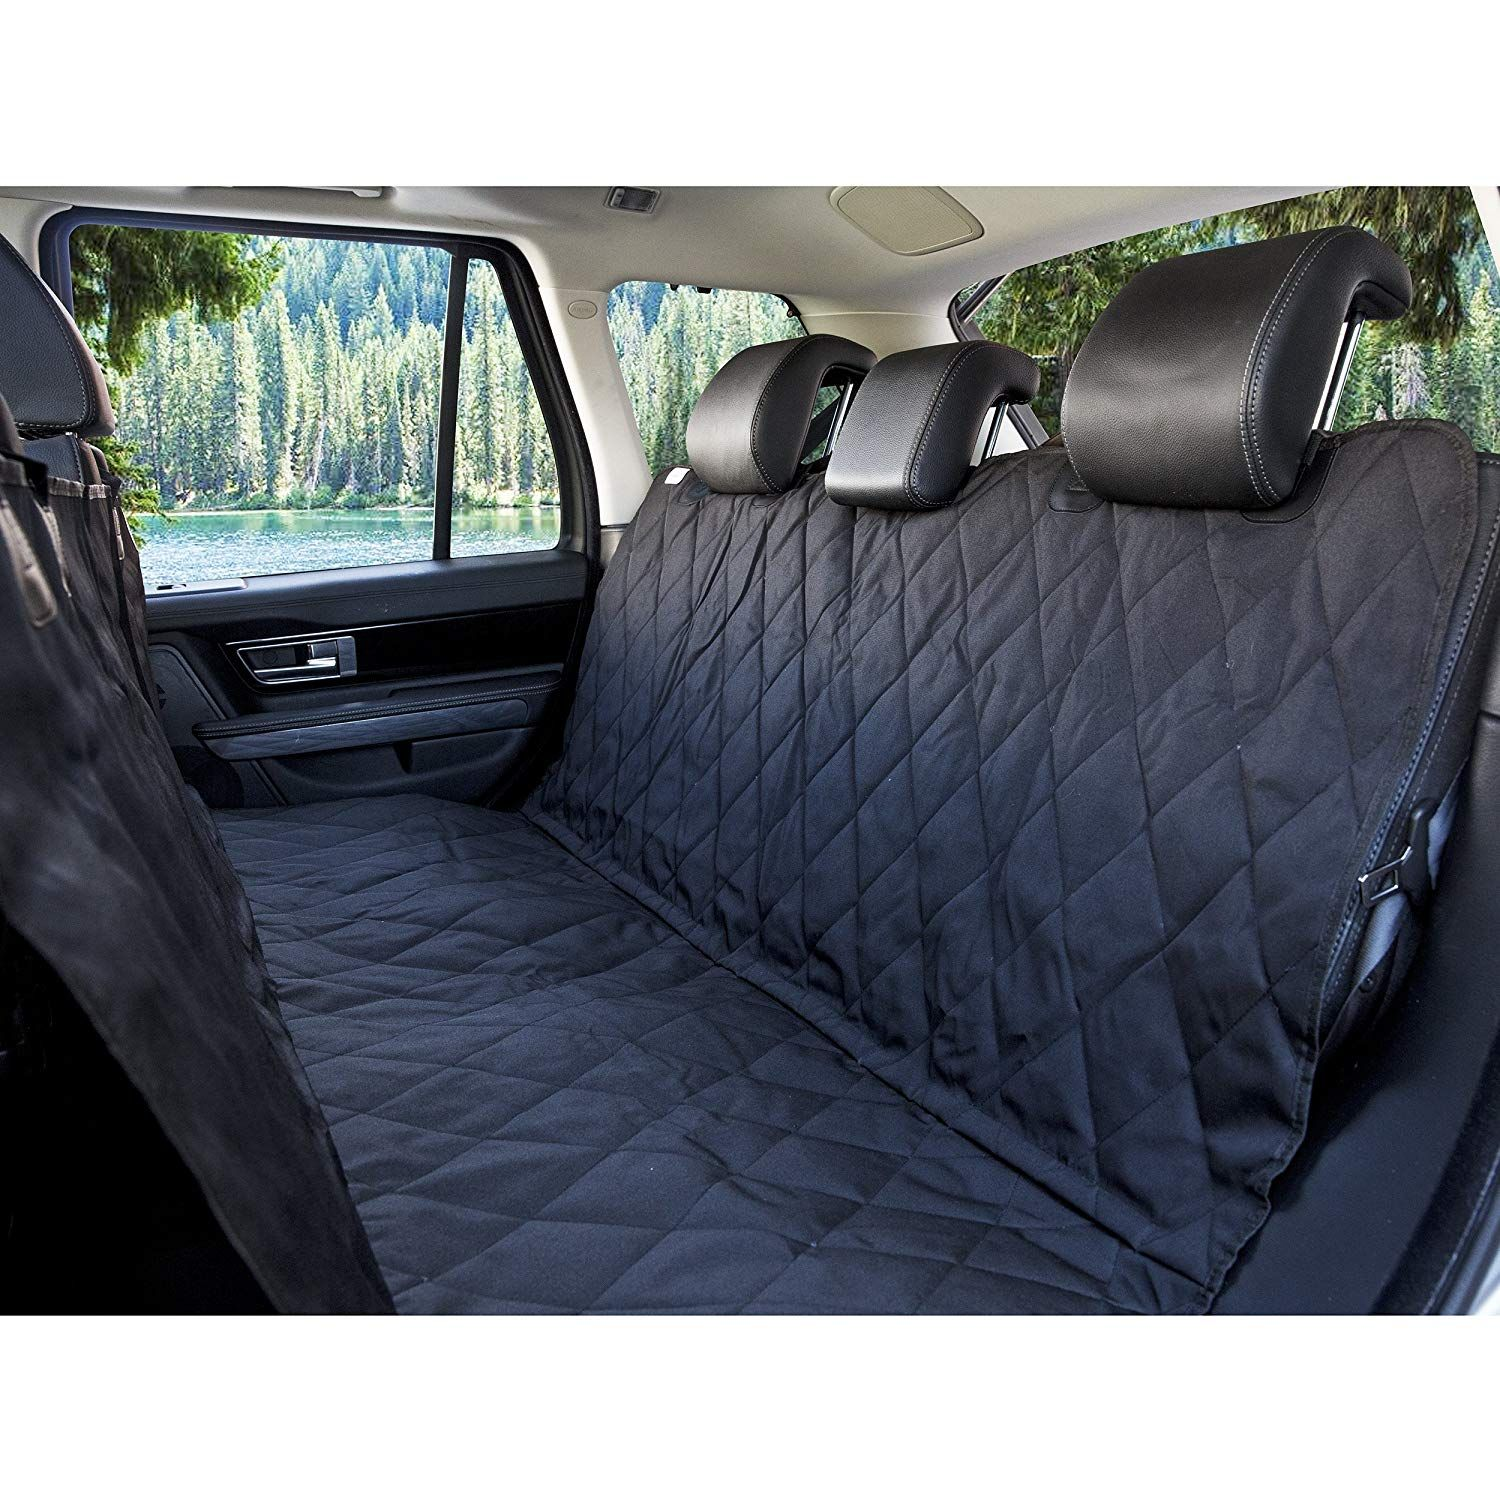 3 Best Dog Car Seat Covers For Suvs Cars And Trucks Pet Car